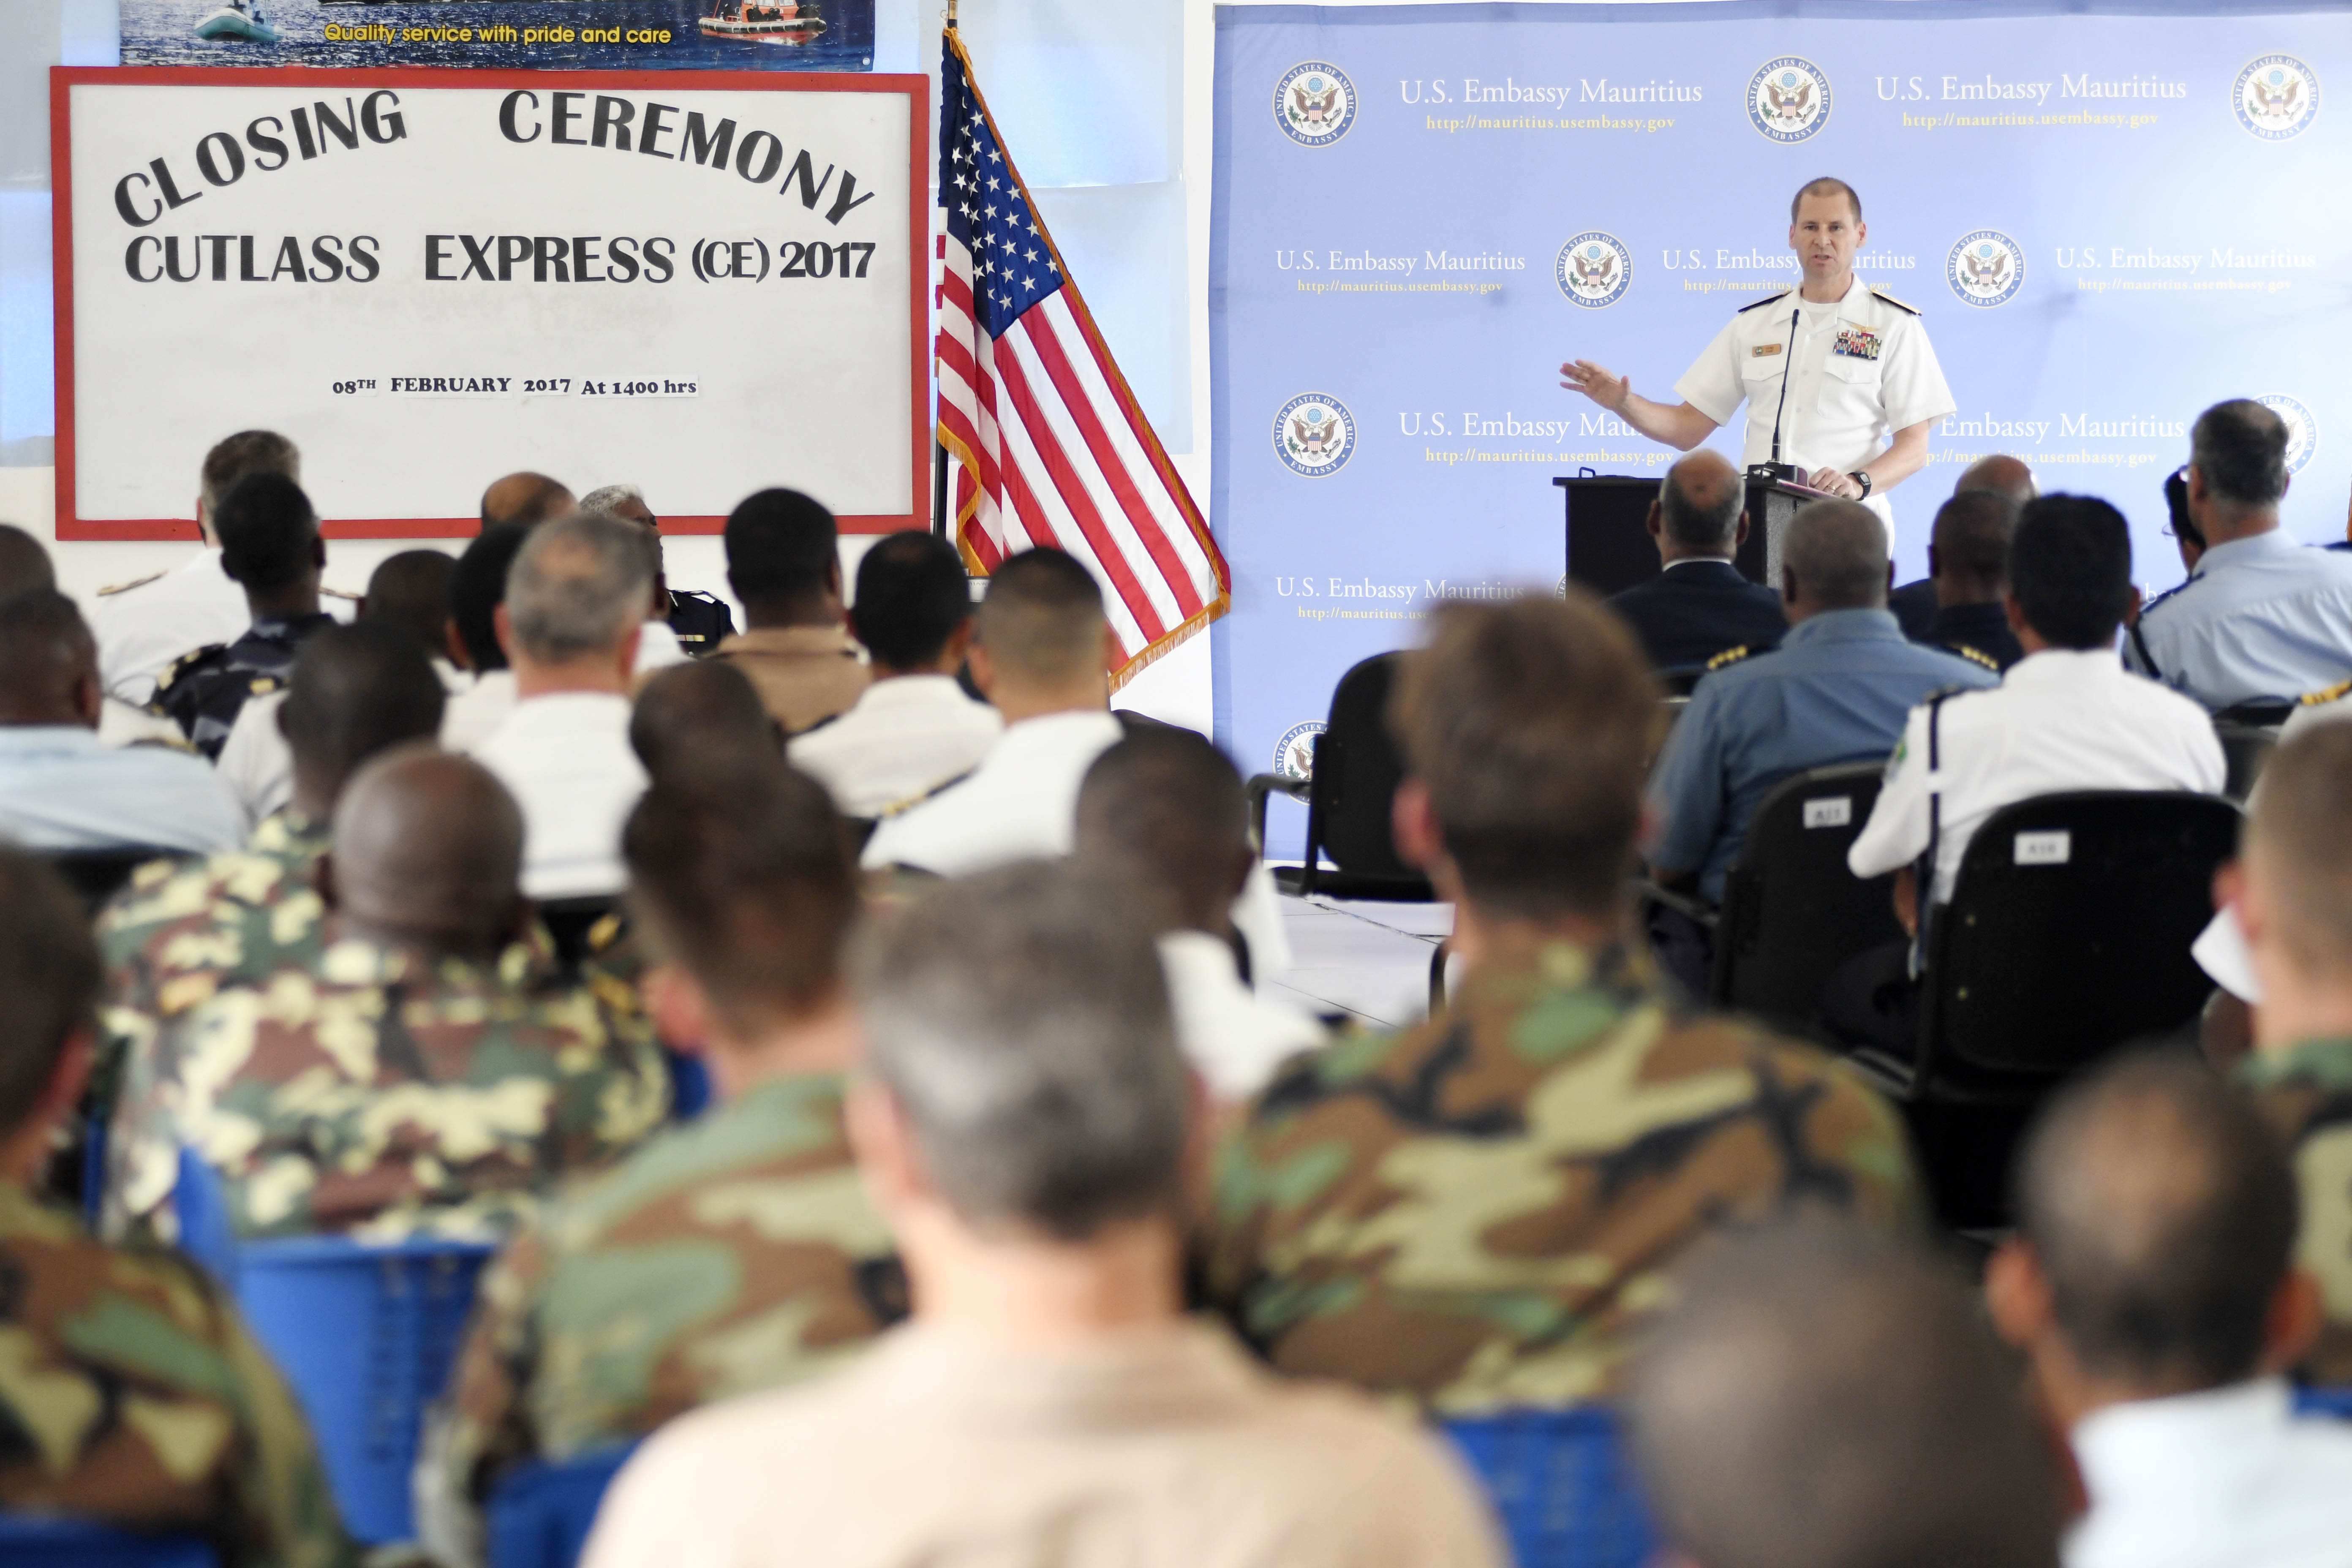 LE CHALAND, Mauritius (Feb. 8, 2017) Rear Adm. Shawn Duane, Vice Commander, U.S. 6th Fleet and Director, Maritime Partner Programs, U.S. Naval Forces Europe-Africa, delivers remarks at the Exercise Cutlass Express closing ceremony Feb. 8, 2017. Exercise Cutlass Express 2017, sponsored by U.S. Africa Command and conducted by U.S. Naval Forces Africa, is designed to assess and improve combined maritime law enforcement capacity and promote national and regional security in East Africa. (U.S. Navy photo by Mass Communication Specialist 1st Class Justin Stumberg/Released)